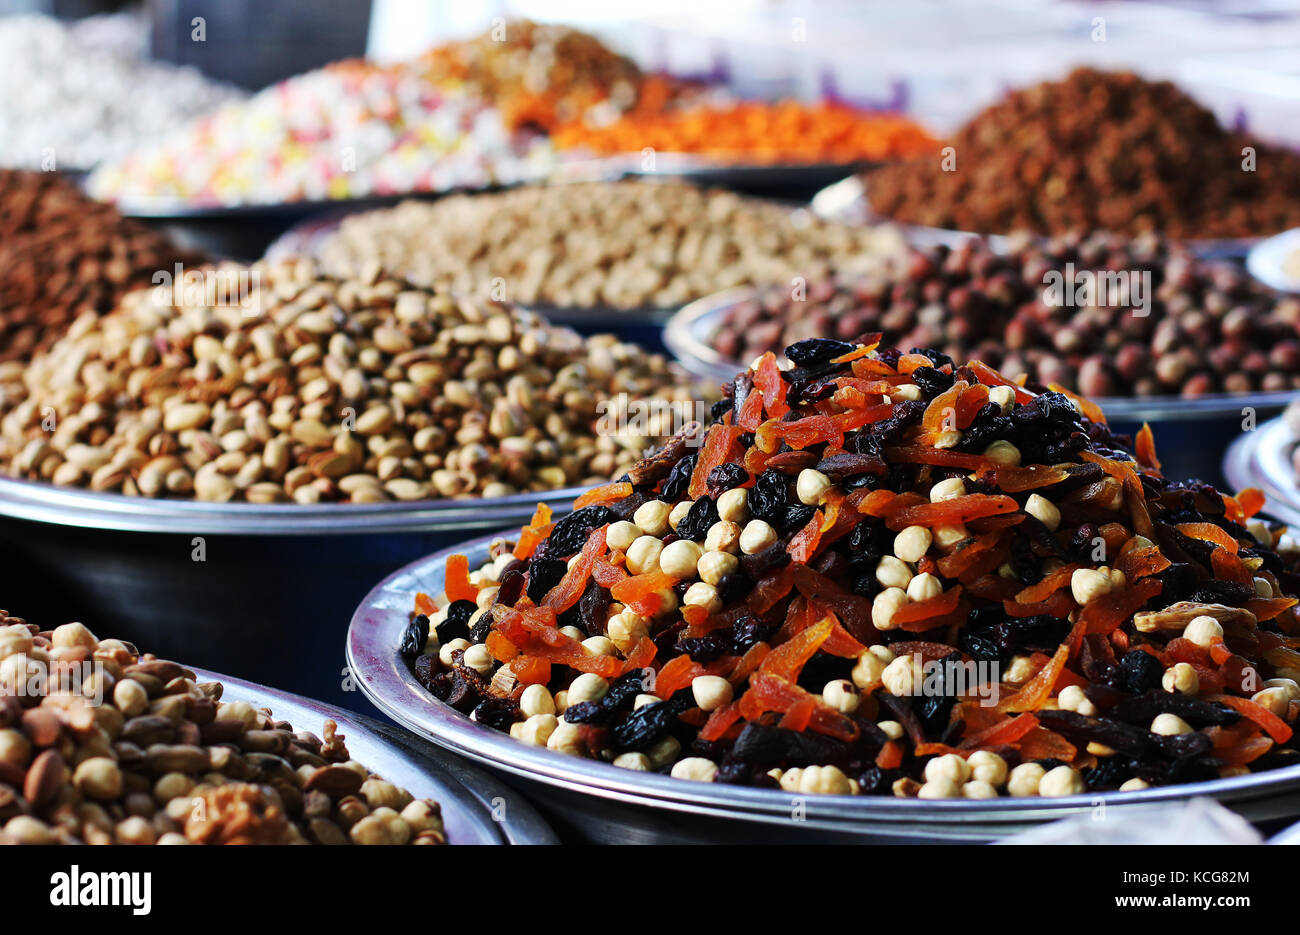 Mixture of dried apricots, prunes and hazelnuts. Dried fruits at east market - Stock Image